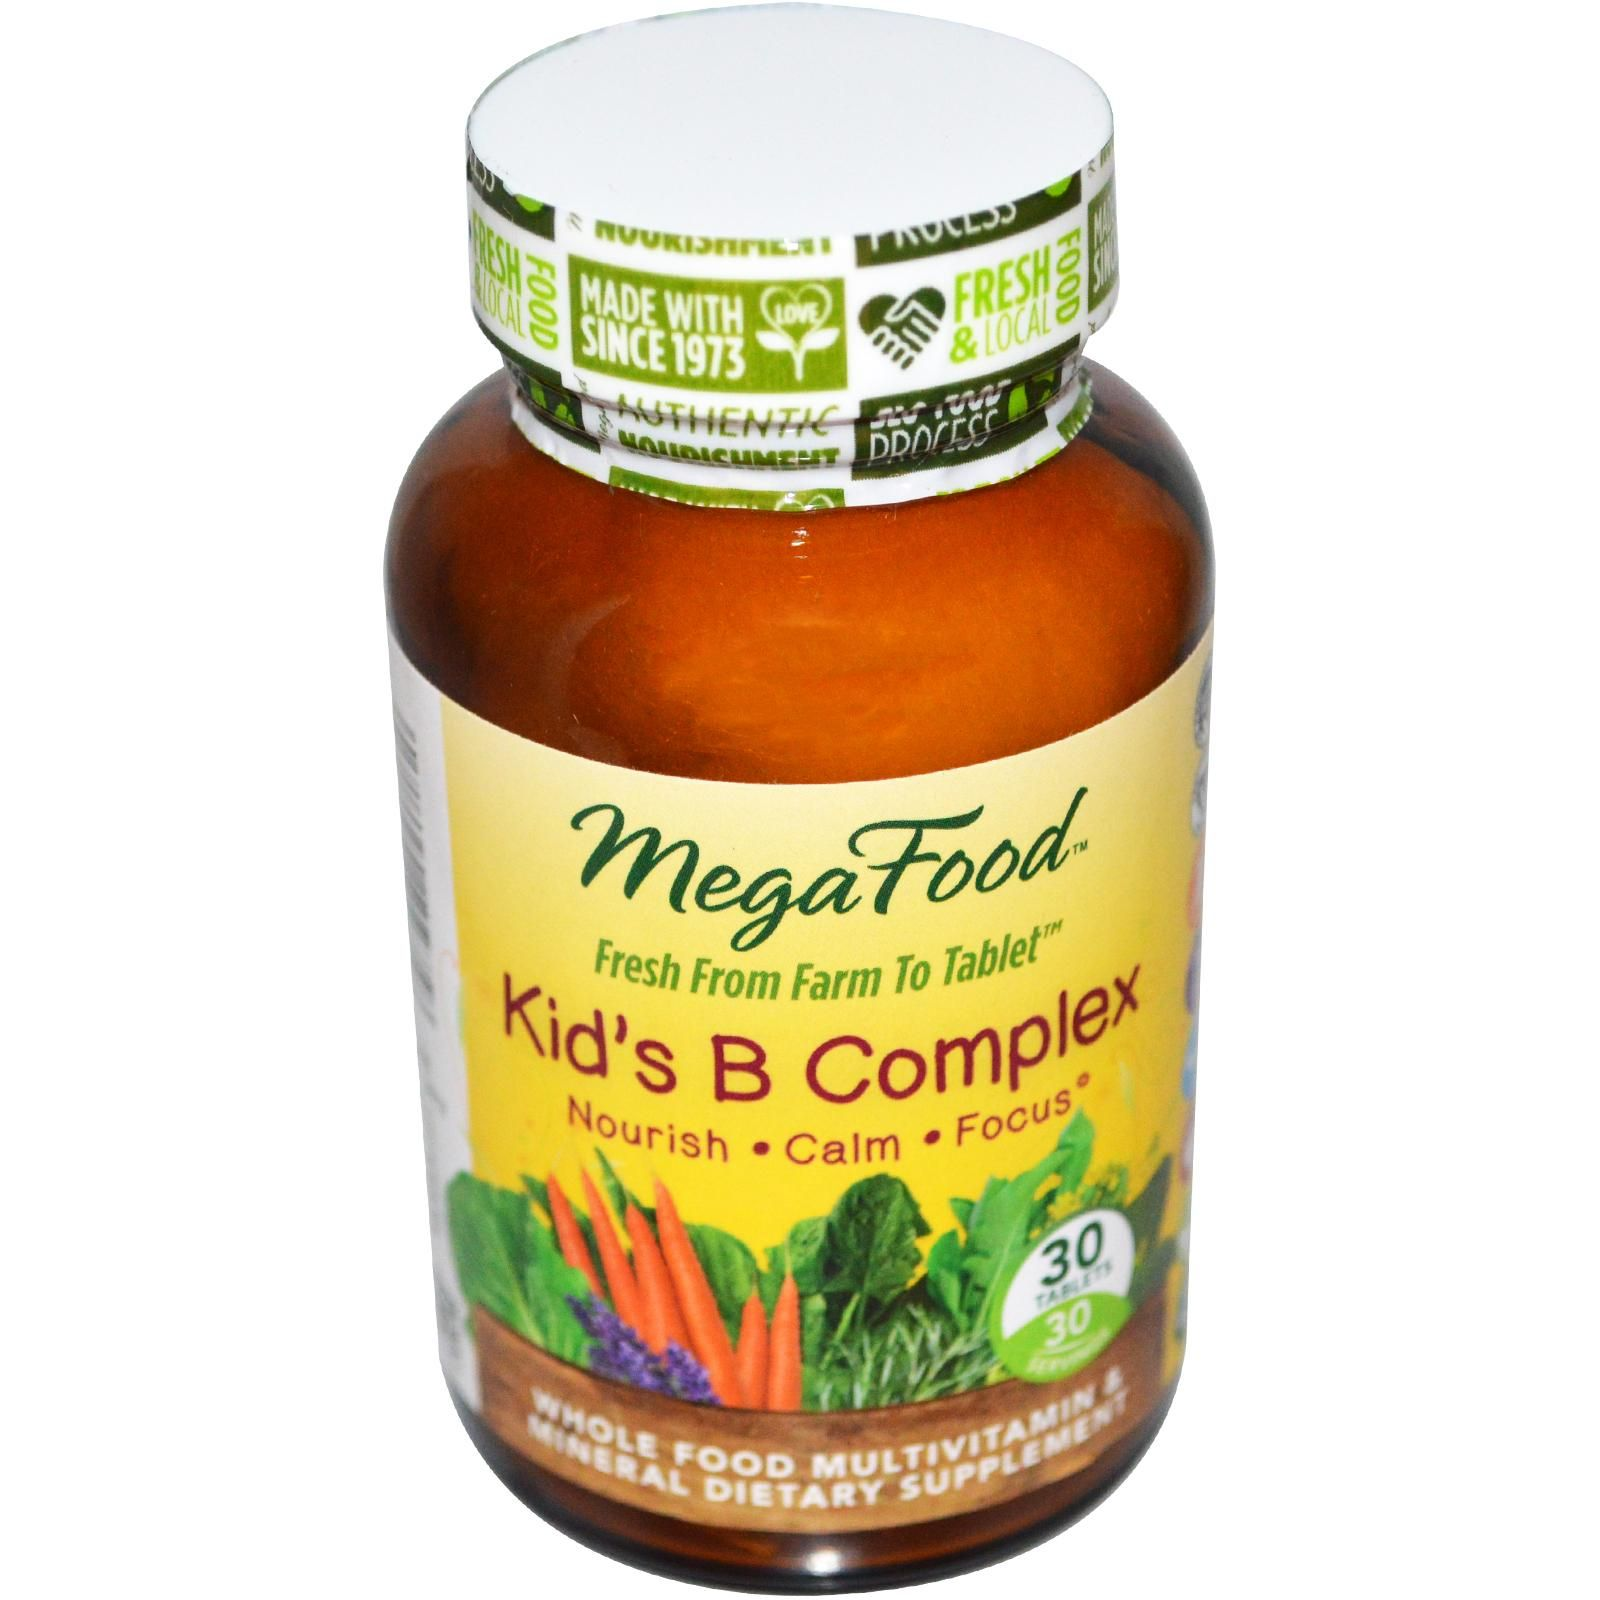 MegaFood, Kids B Complex, 30 Tablets Whole food